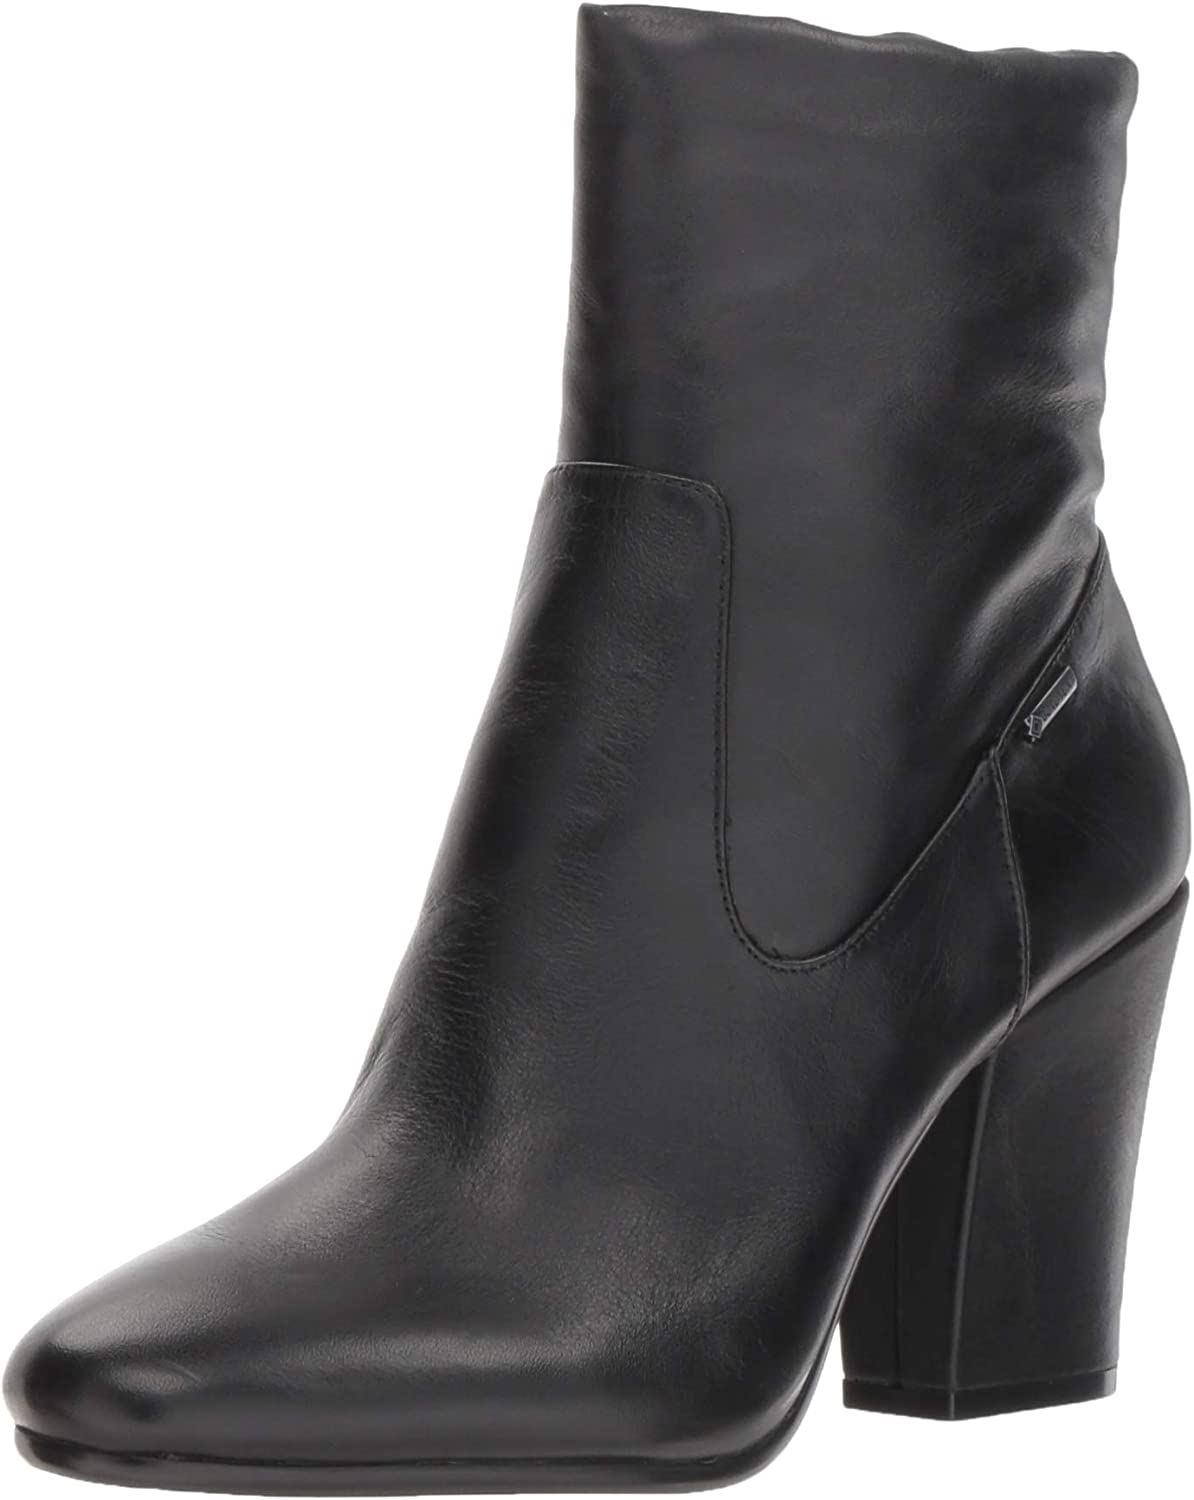 Kenneth Cole New York Womens Merrick Goretex Waterproof Heeled Ankle Bootie Ankle Boot